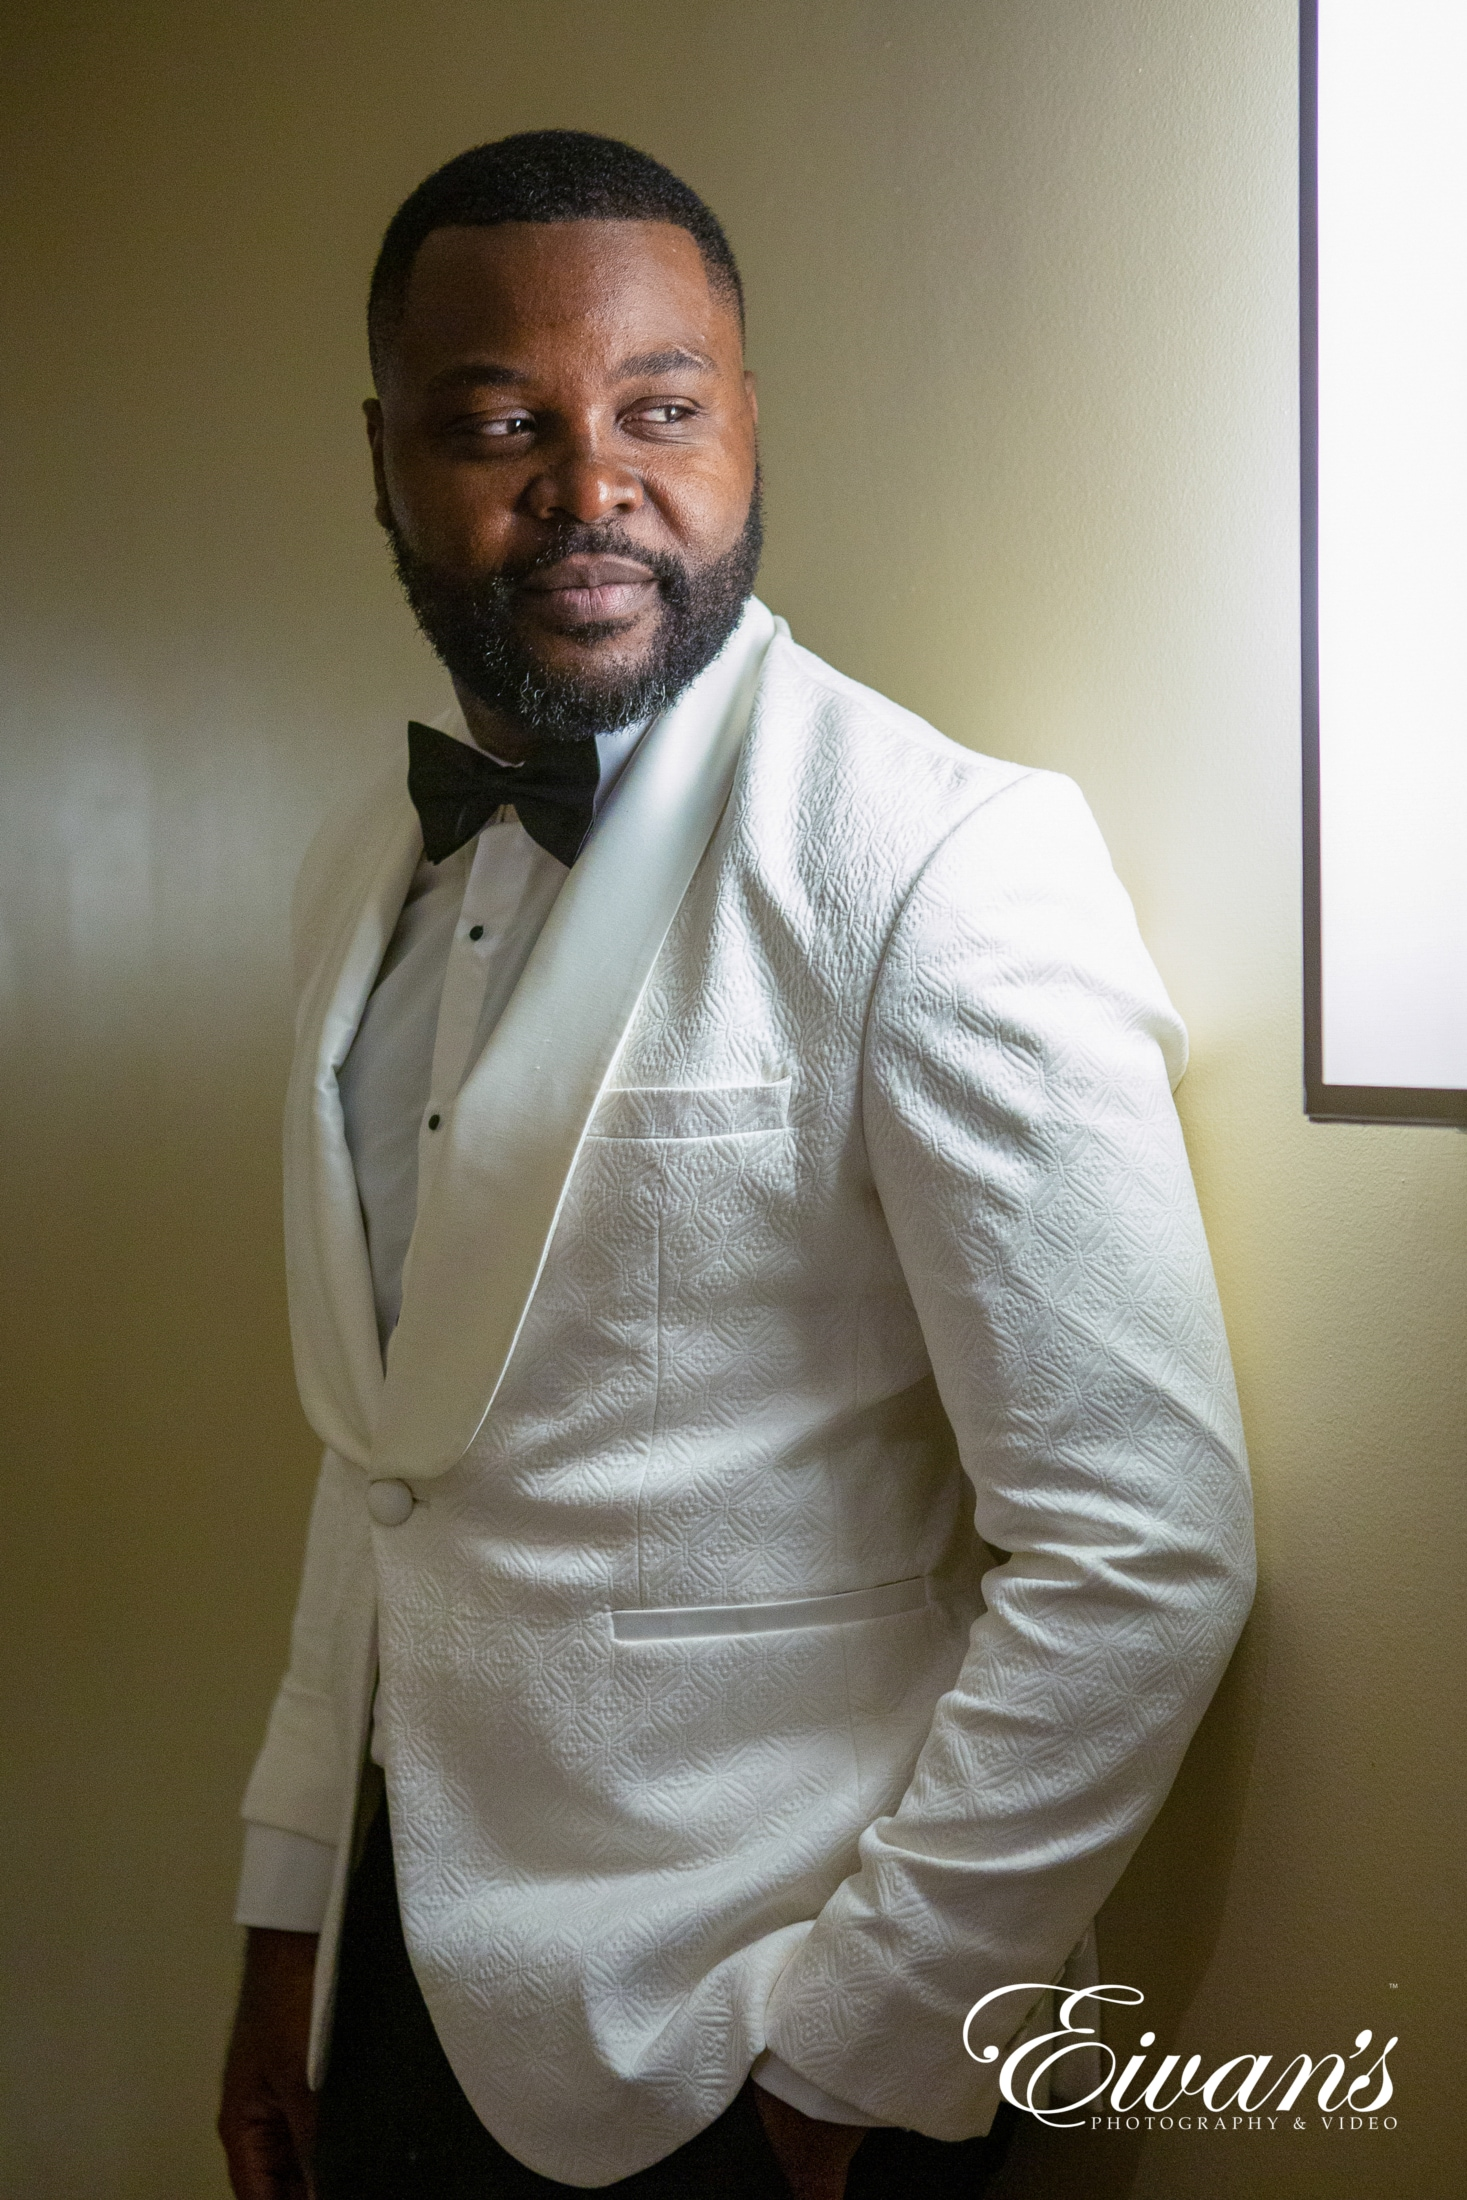 image of a groom in a white jacket